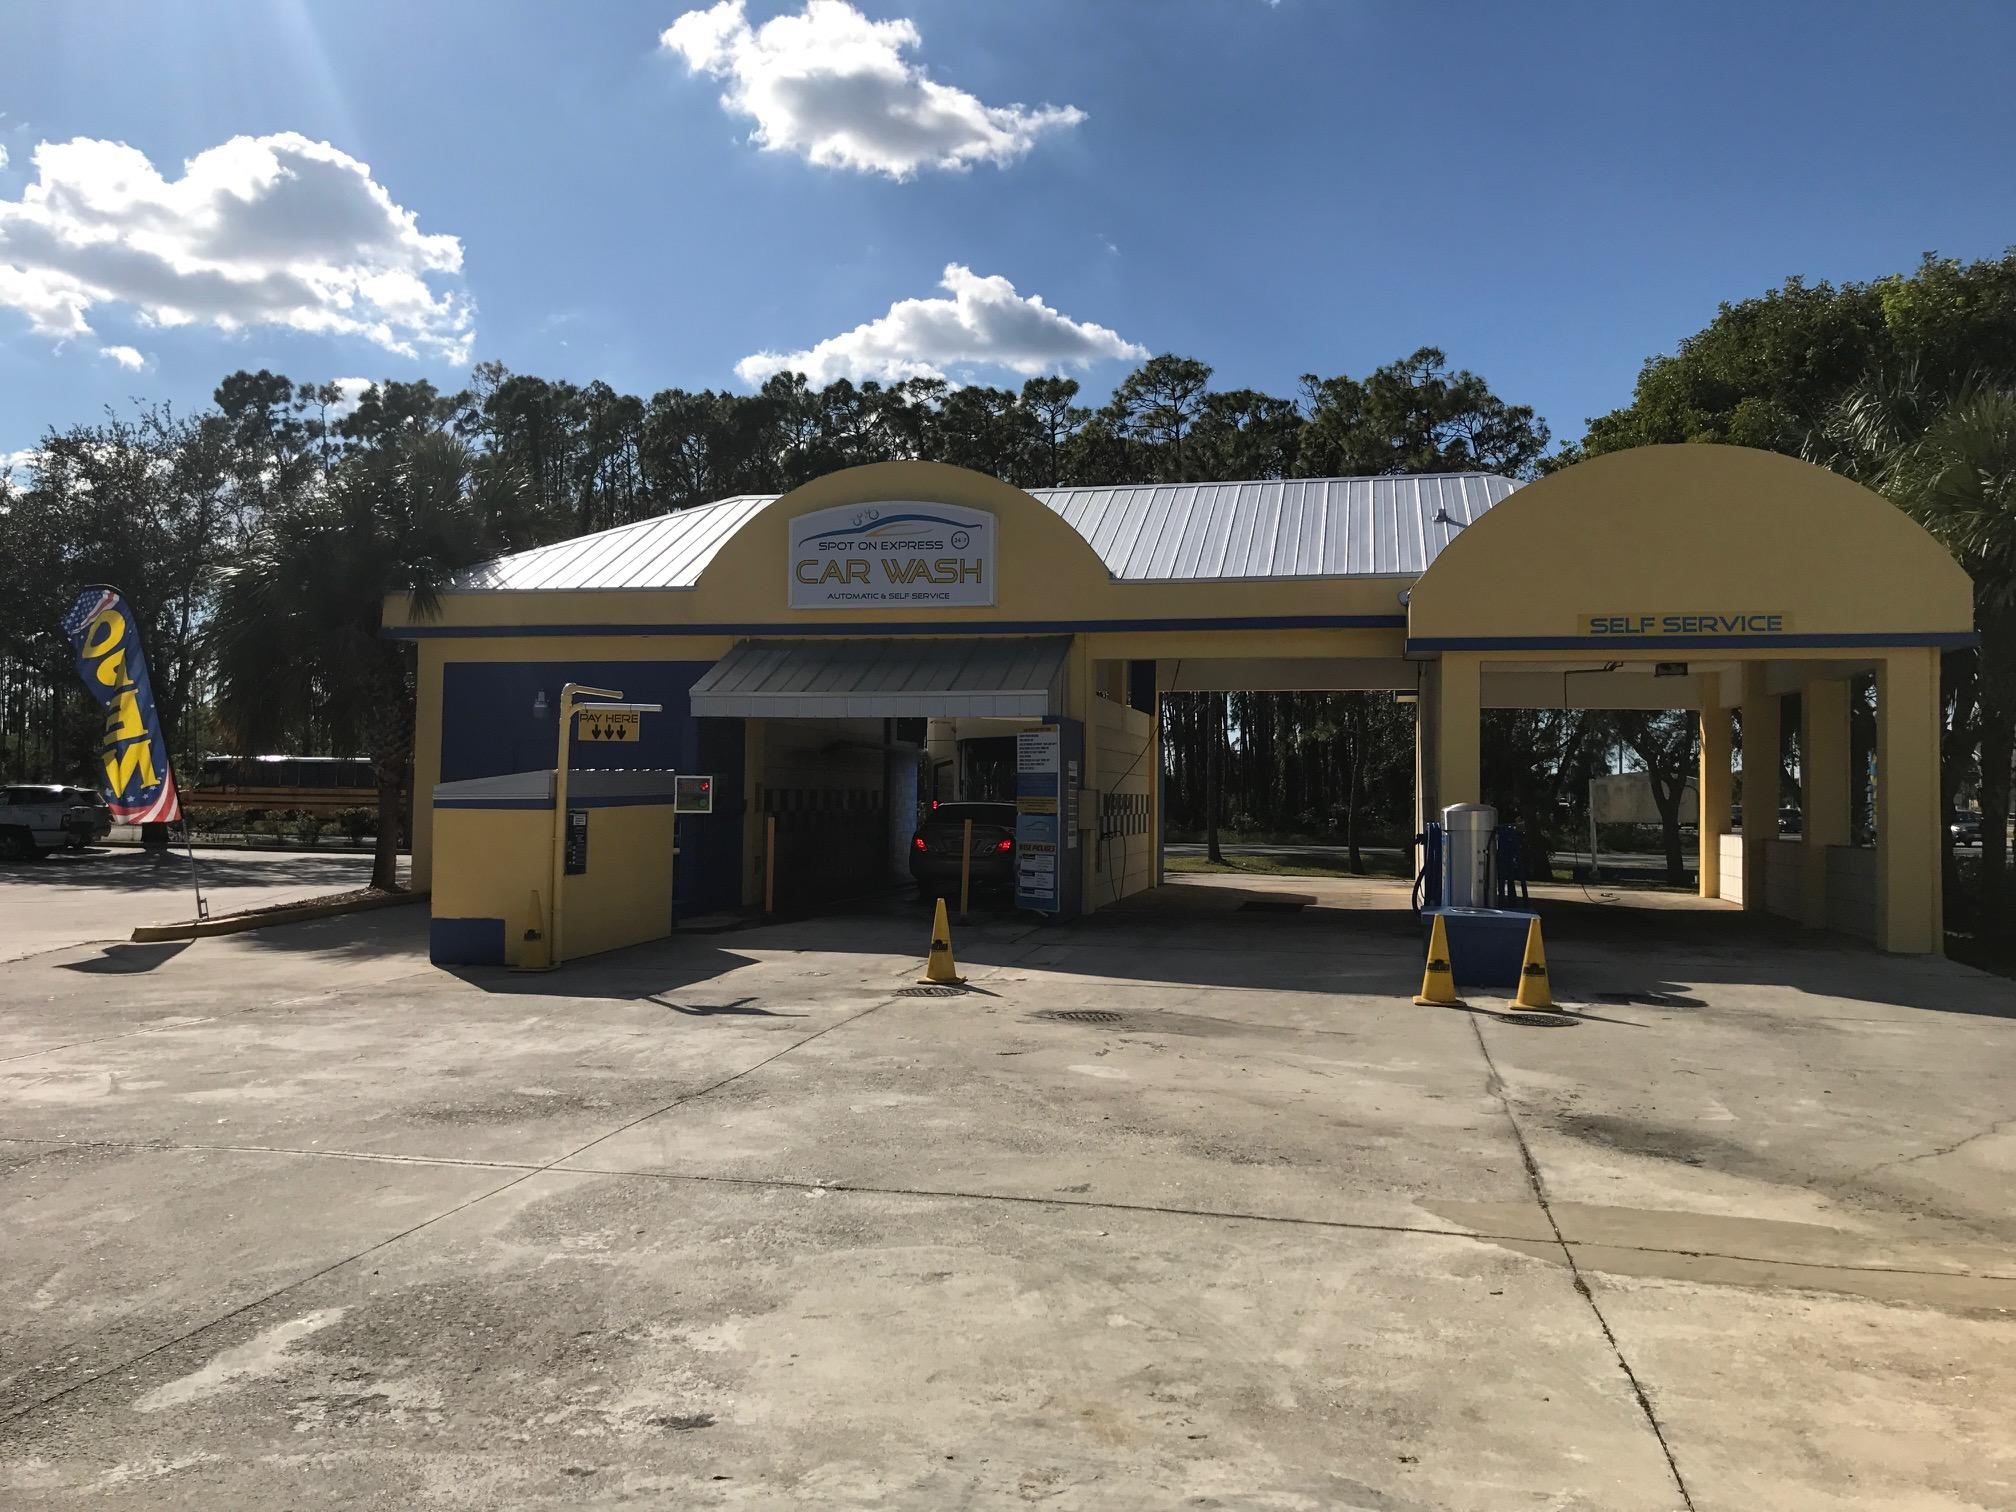 Spot on express car wash 15251 convenience way fort myers fl car spot on express car wash 15251 convenience way fort myers fl car washes mapquest solutioingenieria Gallery